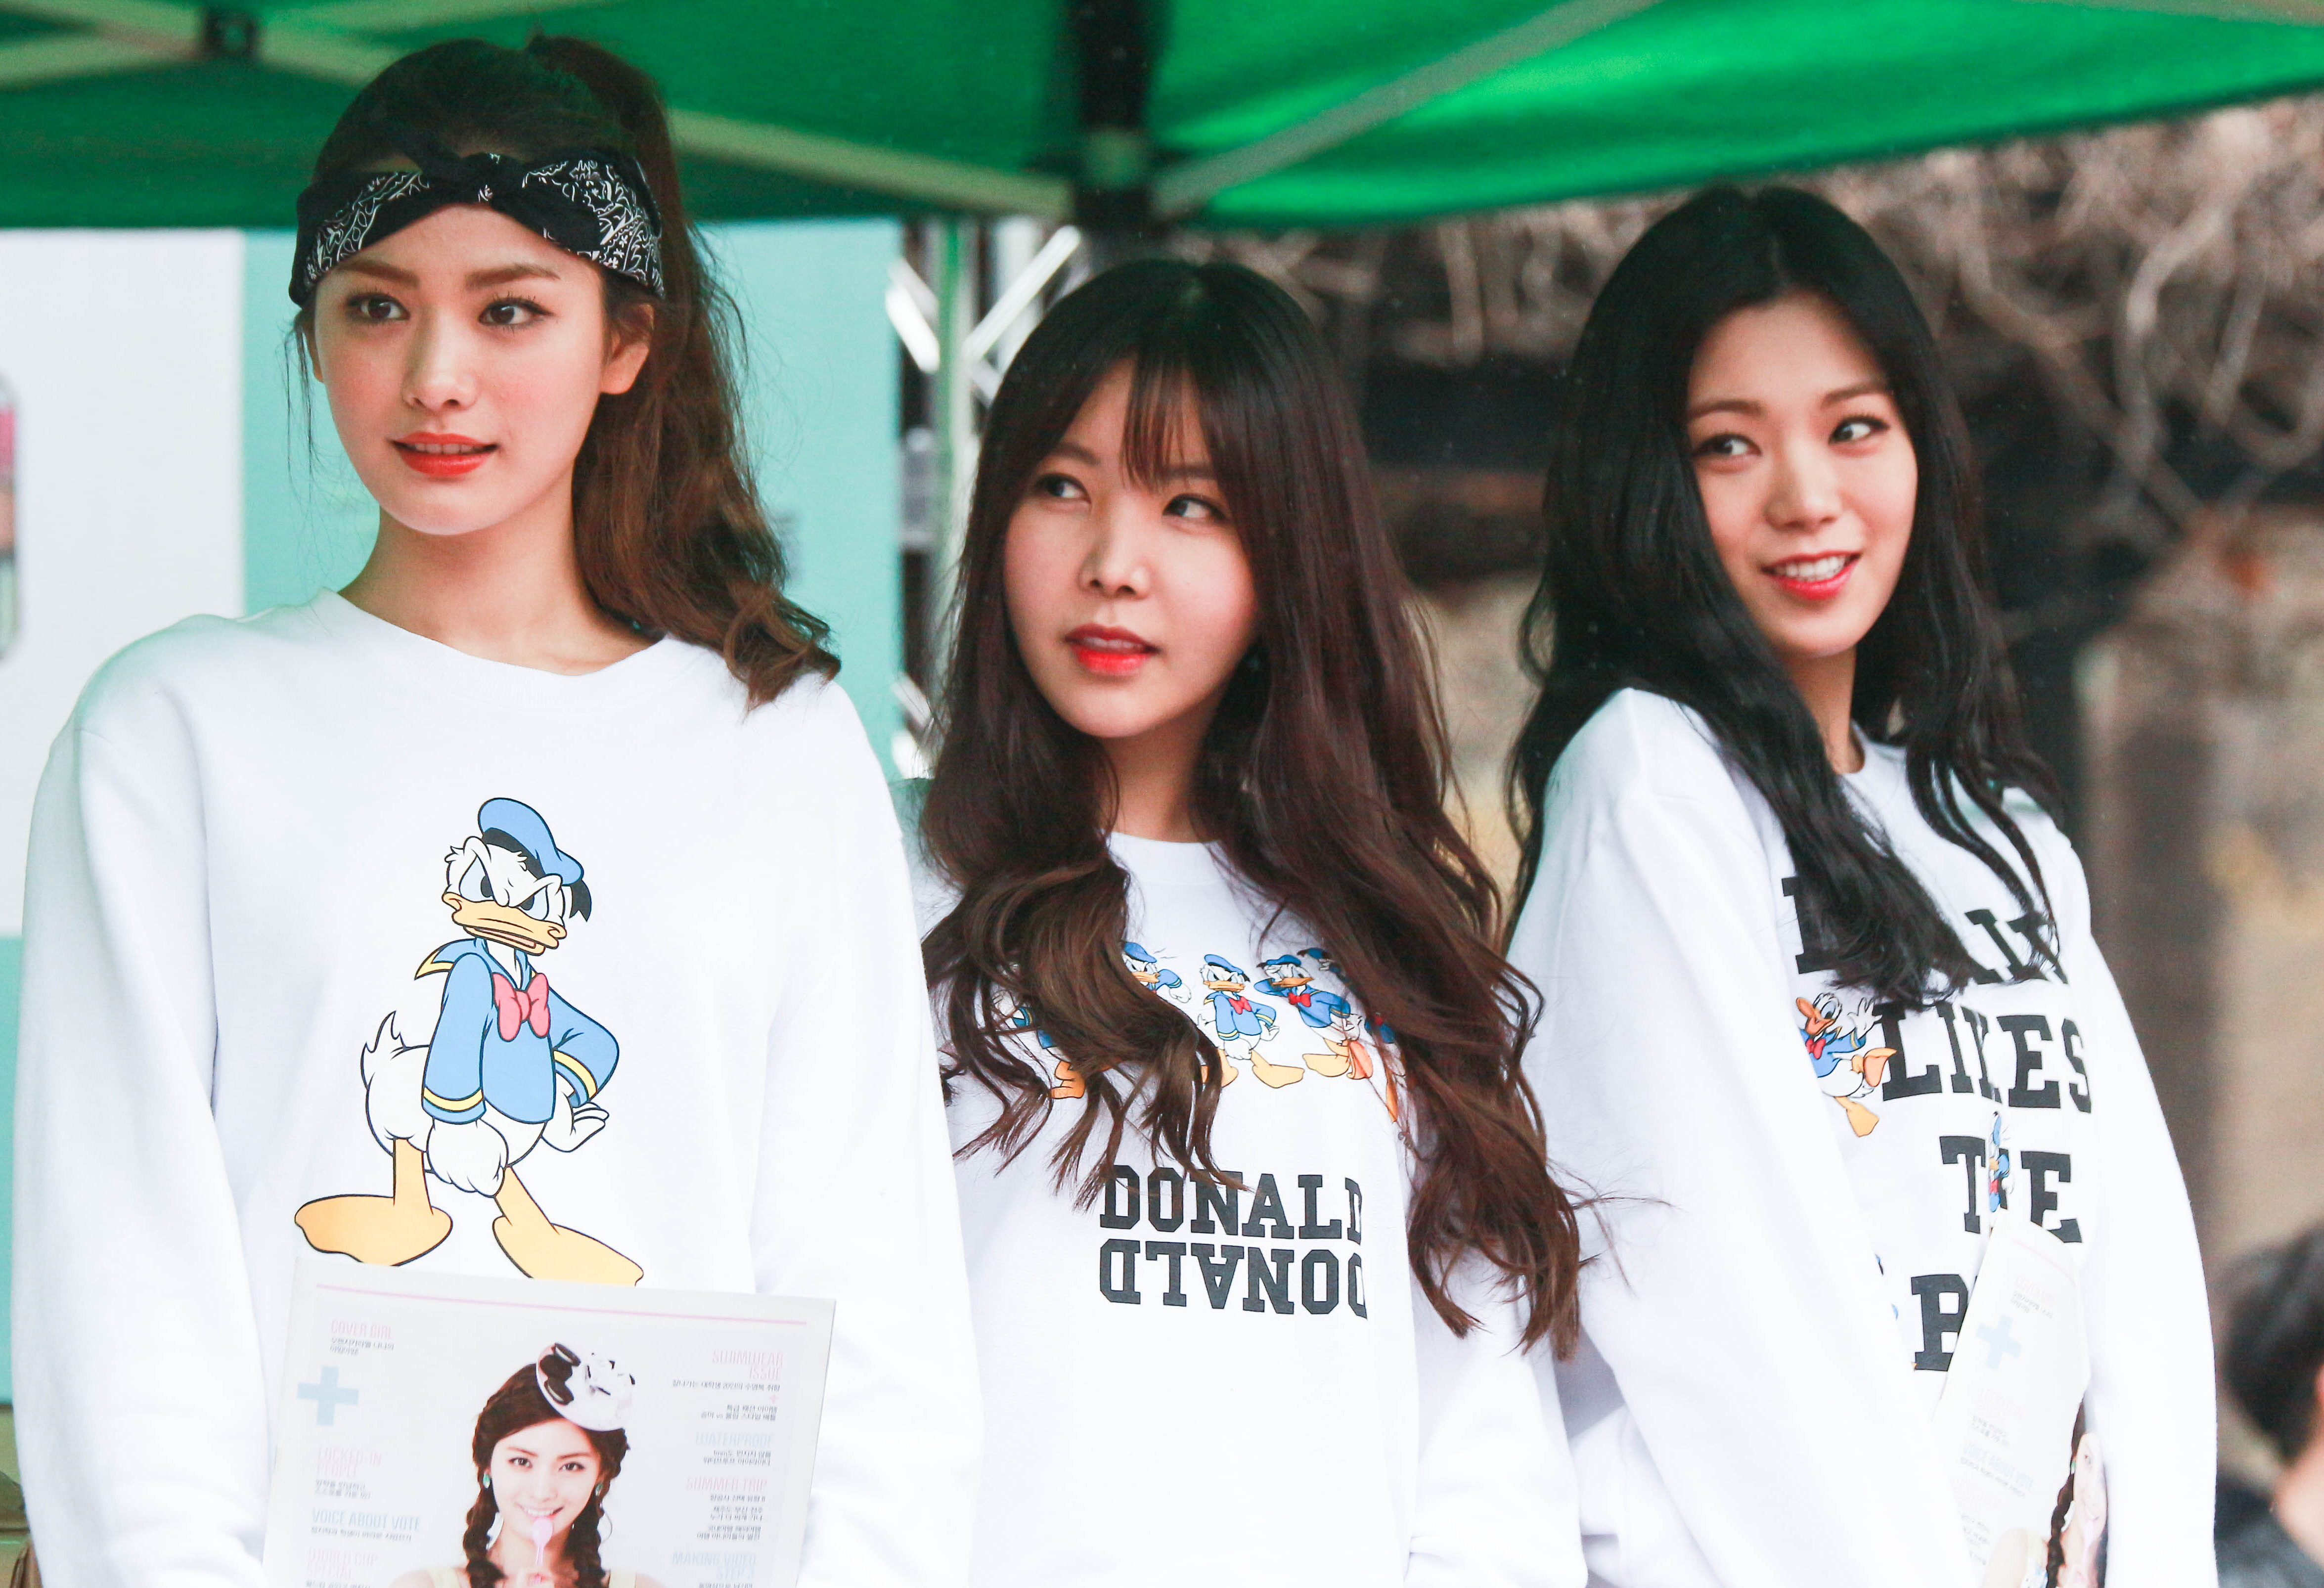 Orange Caramel Wikipedia Asiachan has 133 orange caramel images, wallpapers, hd wallpapers, android/iphone wallpapers, facebook covers, and many more in its gallery. wikipedia